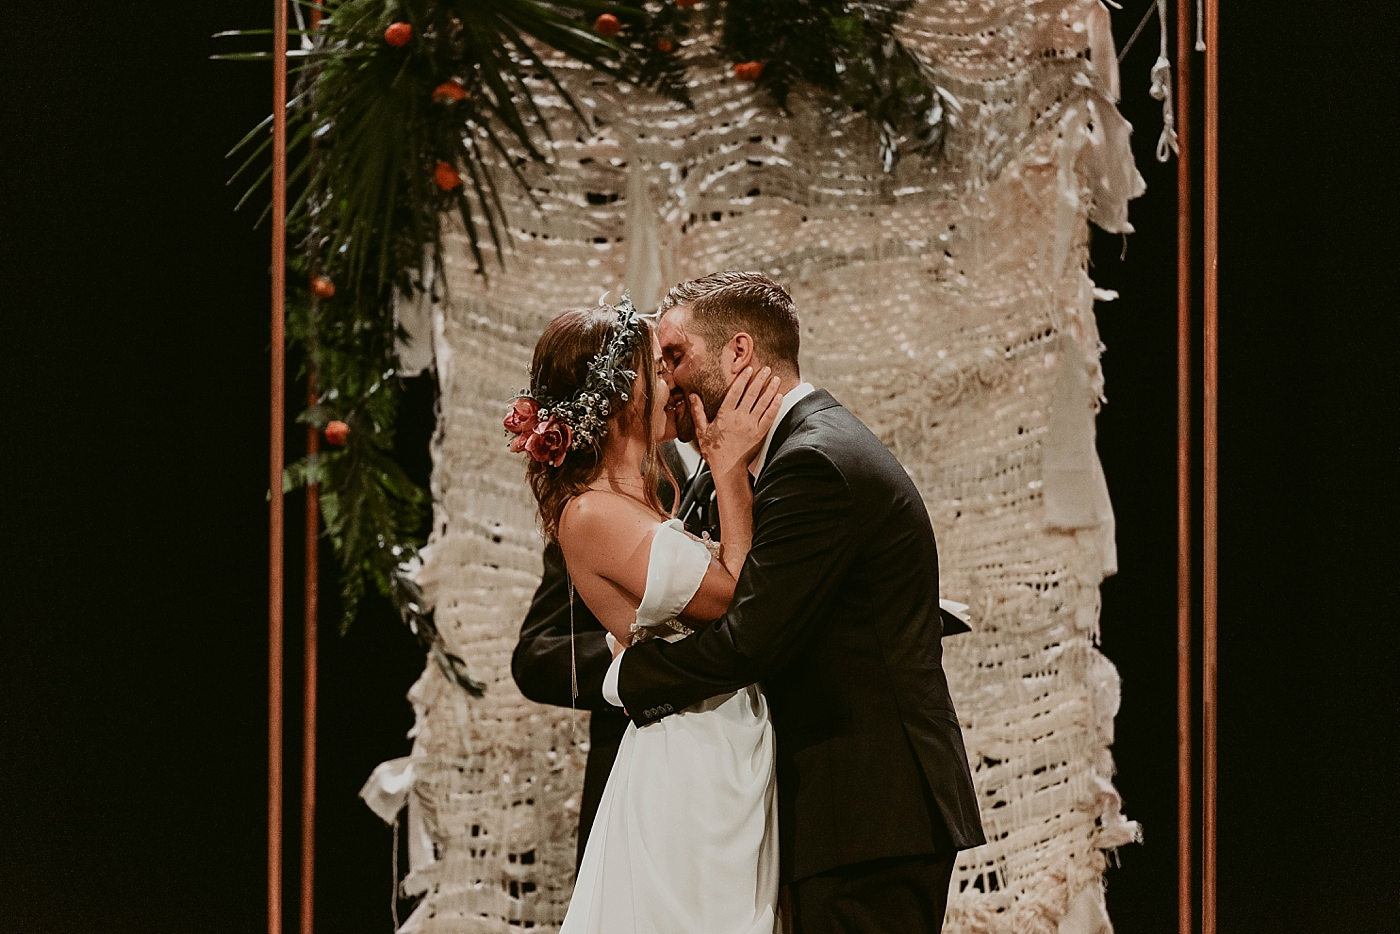 Woodland-Theater-Wedding-Molly+Ryan_MJPHOTO-447.jpg